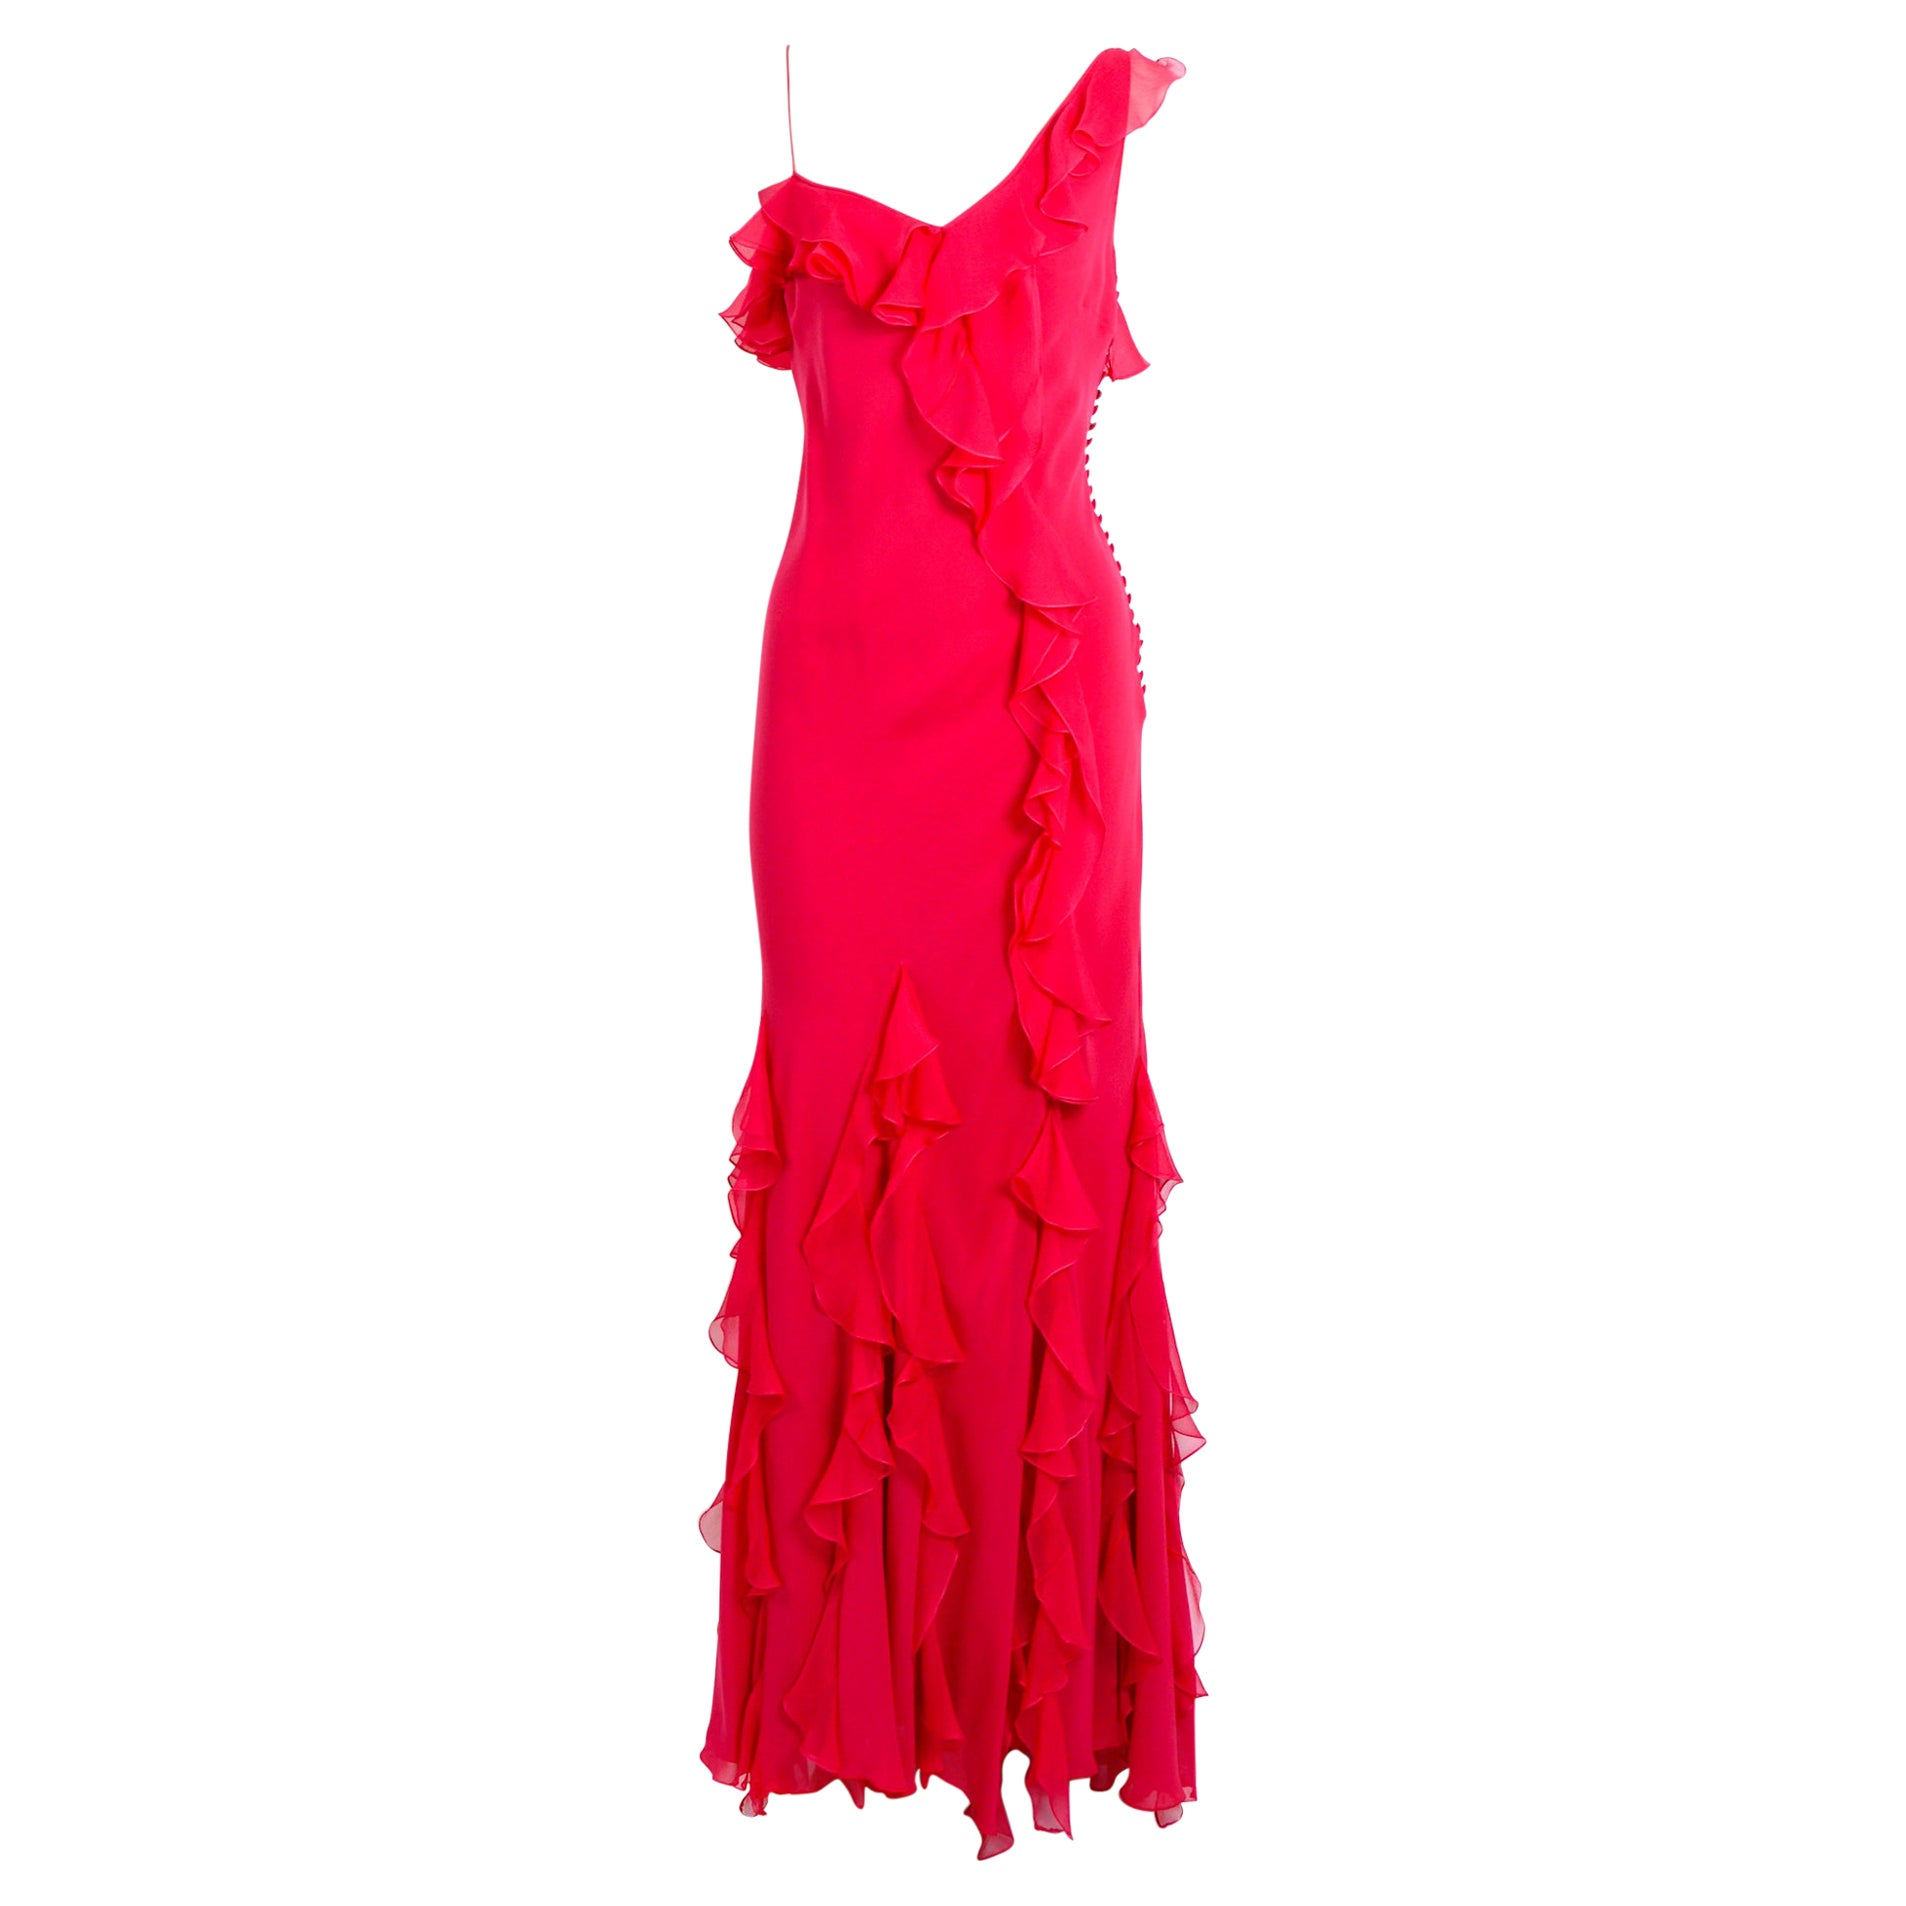 John Galliano 1990s vintage red silk bias cut ruffle dress